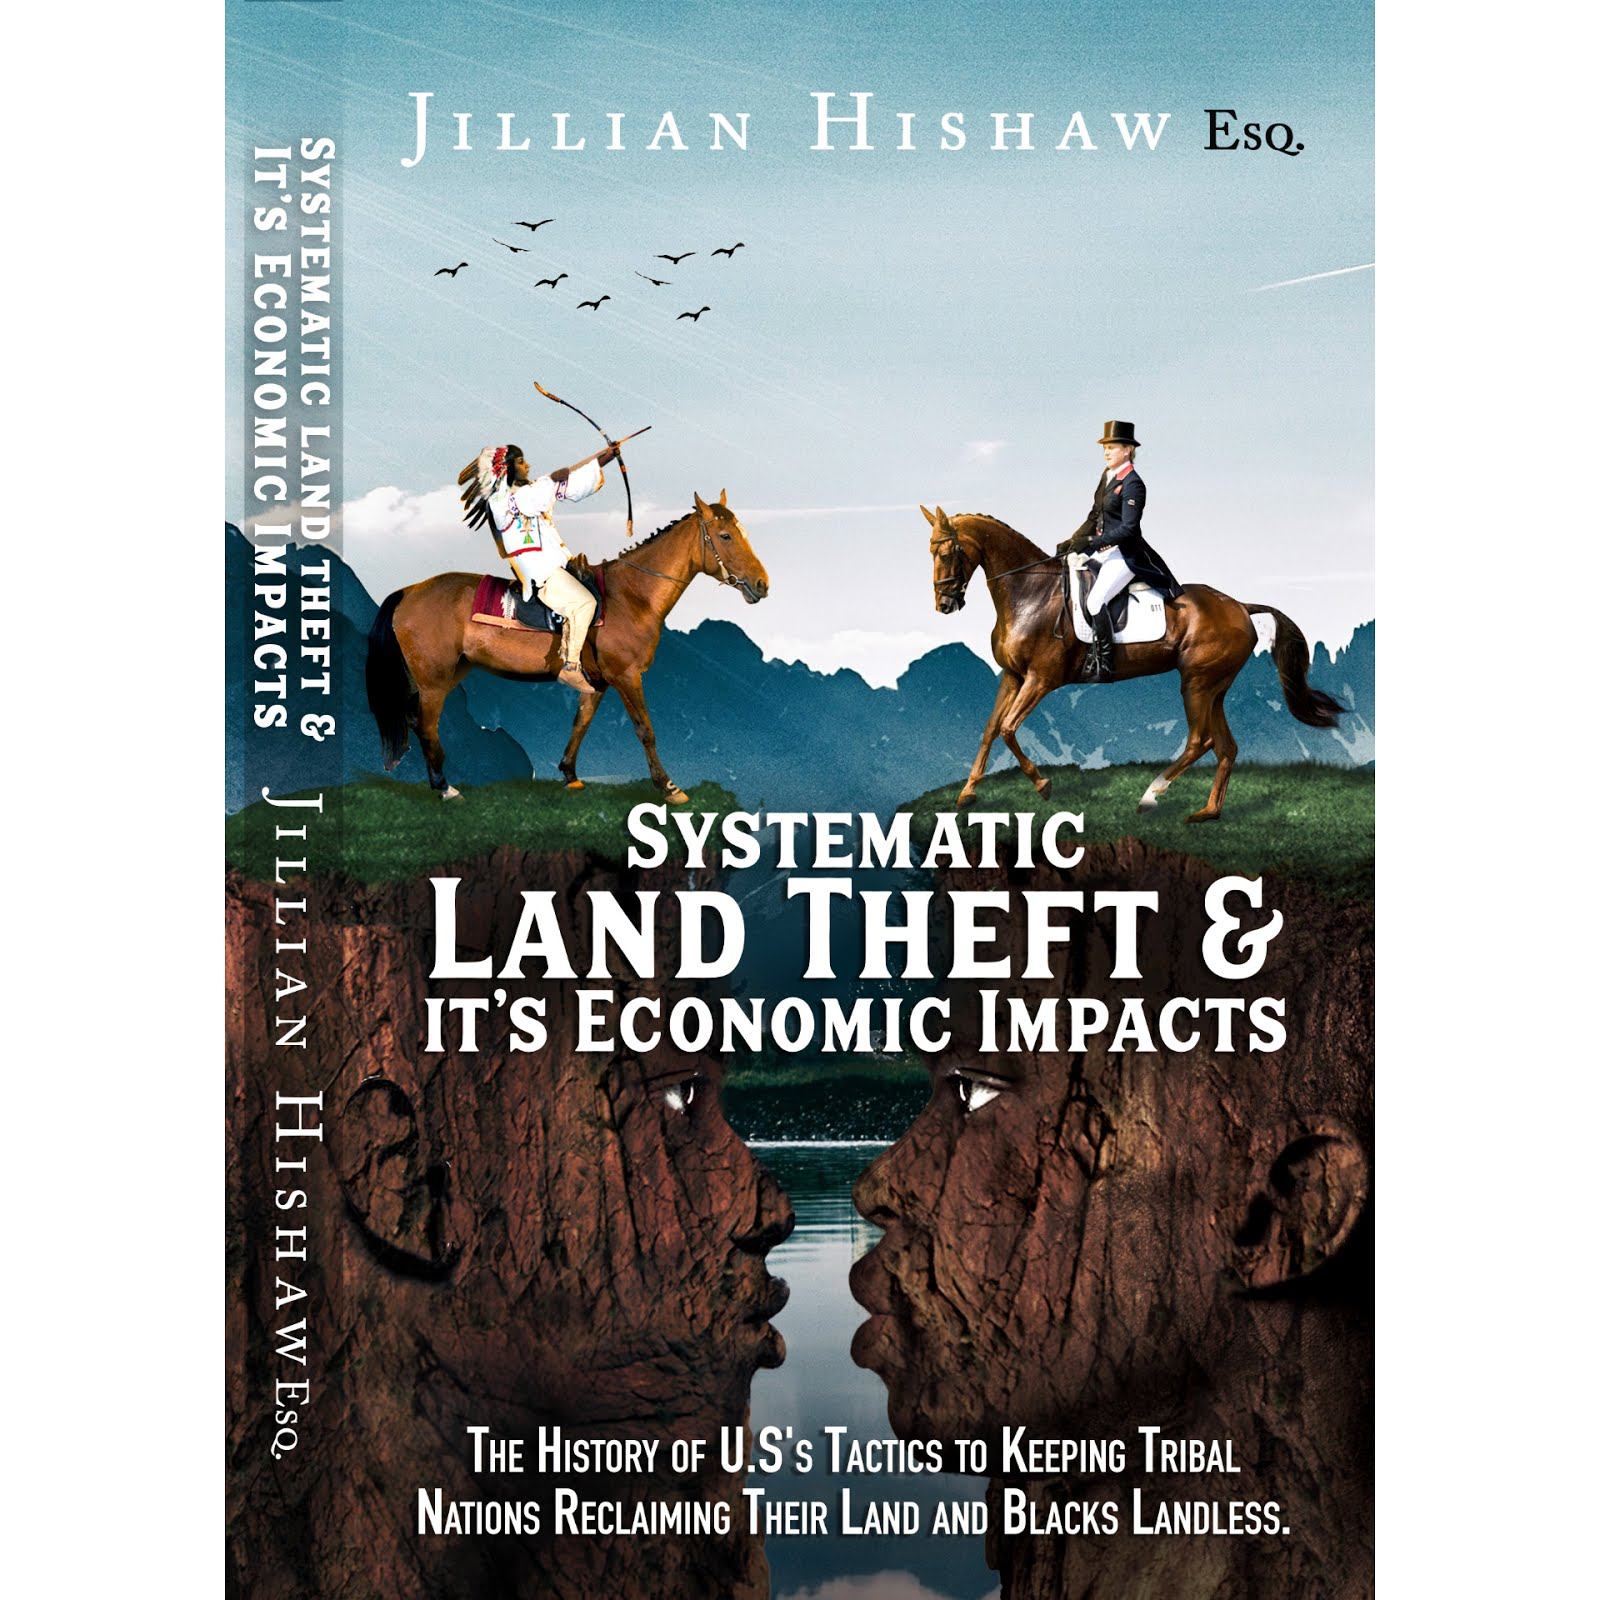 """Systematic Land Theft & It's Economic Impacts"""